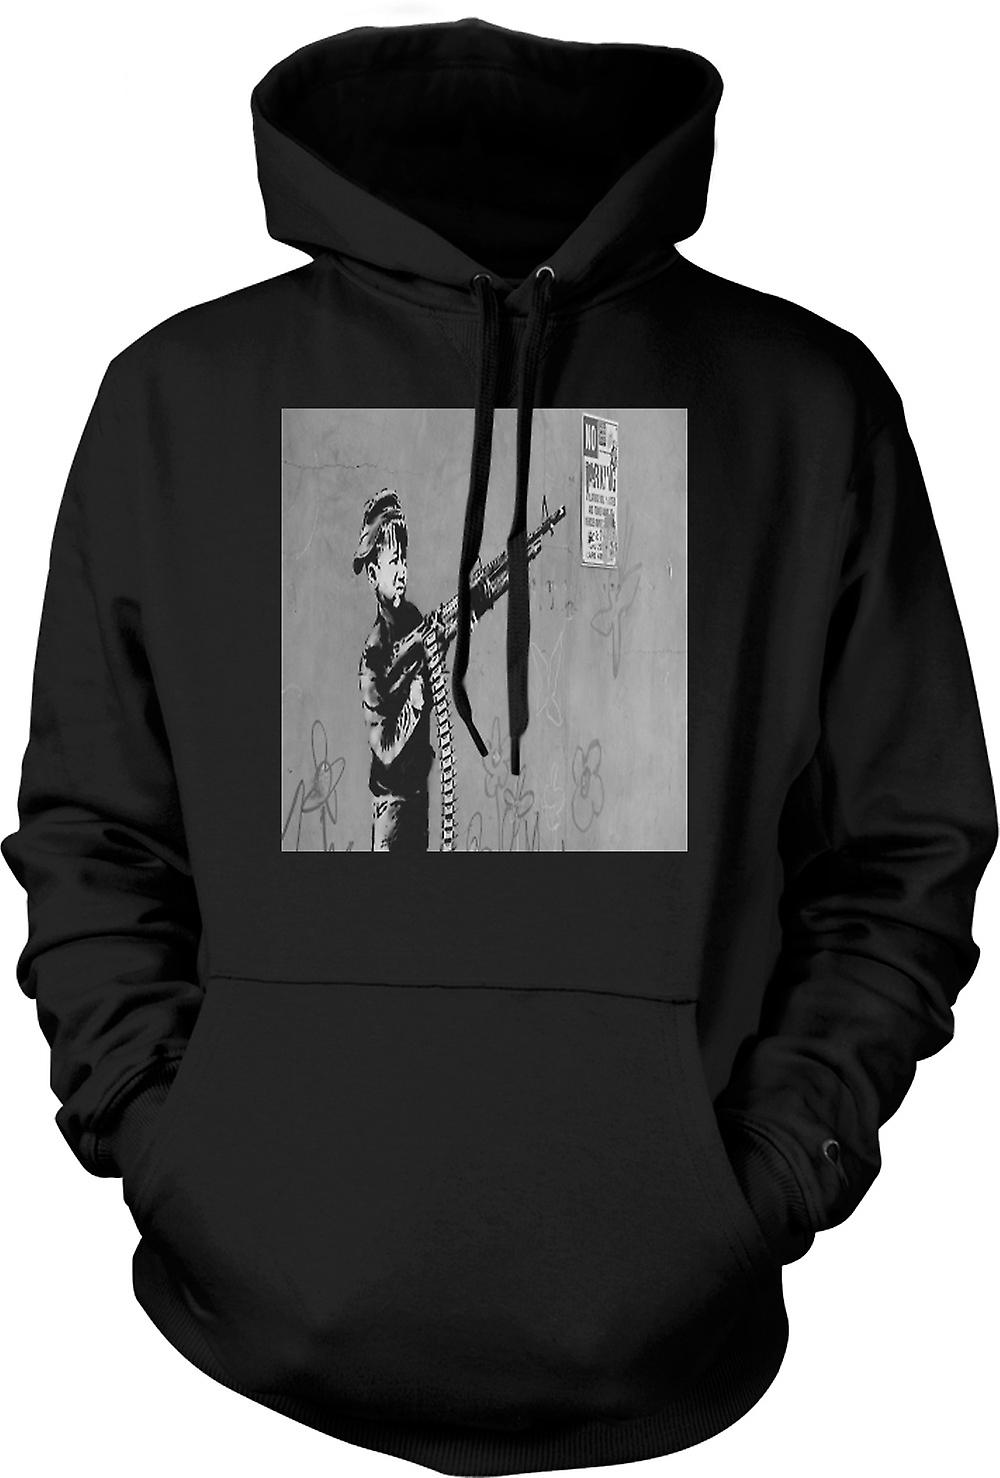 Mens Hoodie - Banksy Kid With M60 Machien Gun Wall Design